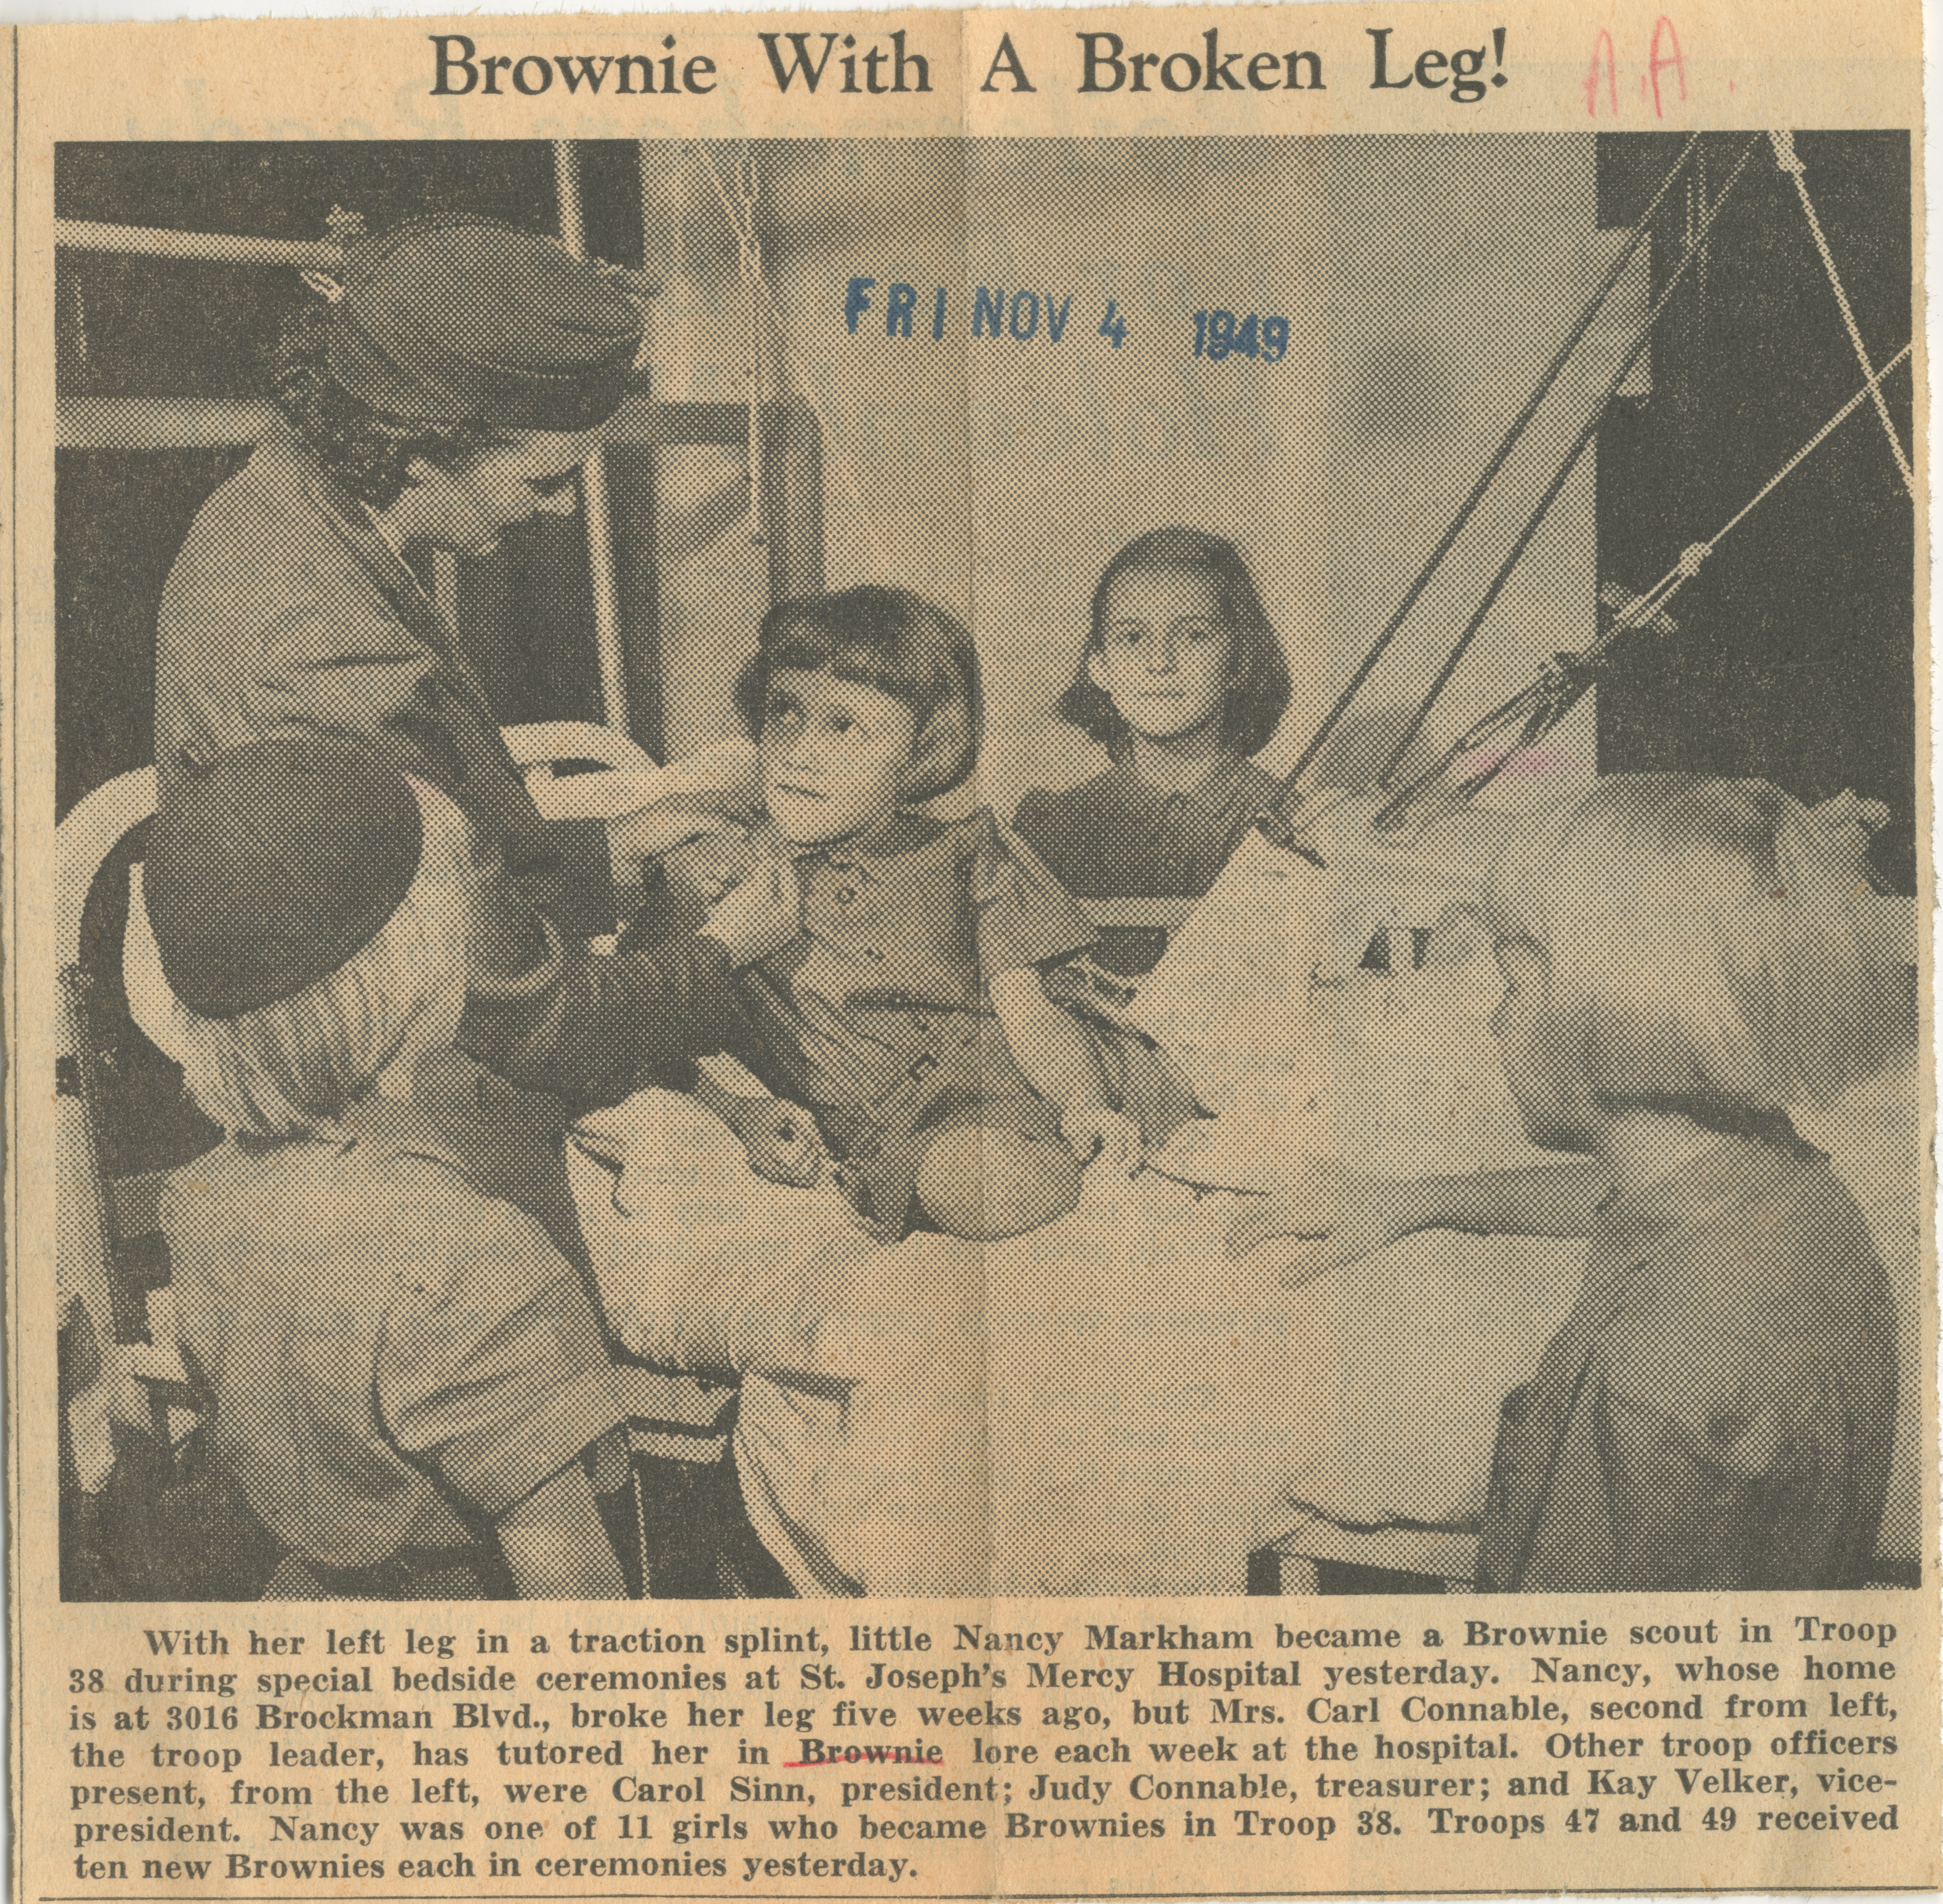 Brownie With A Broken Leg! image